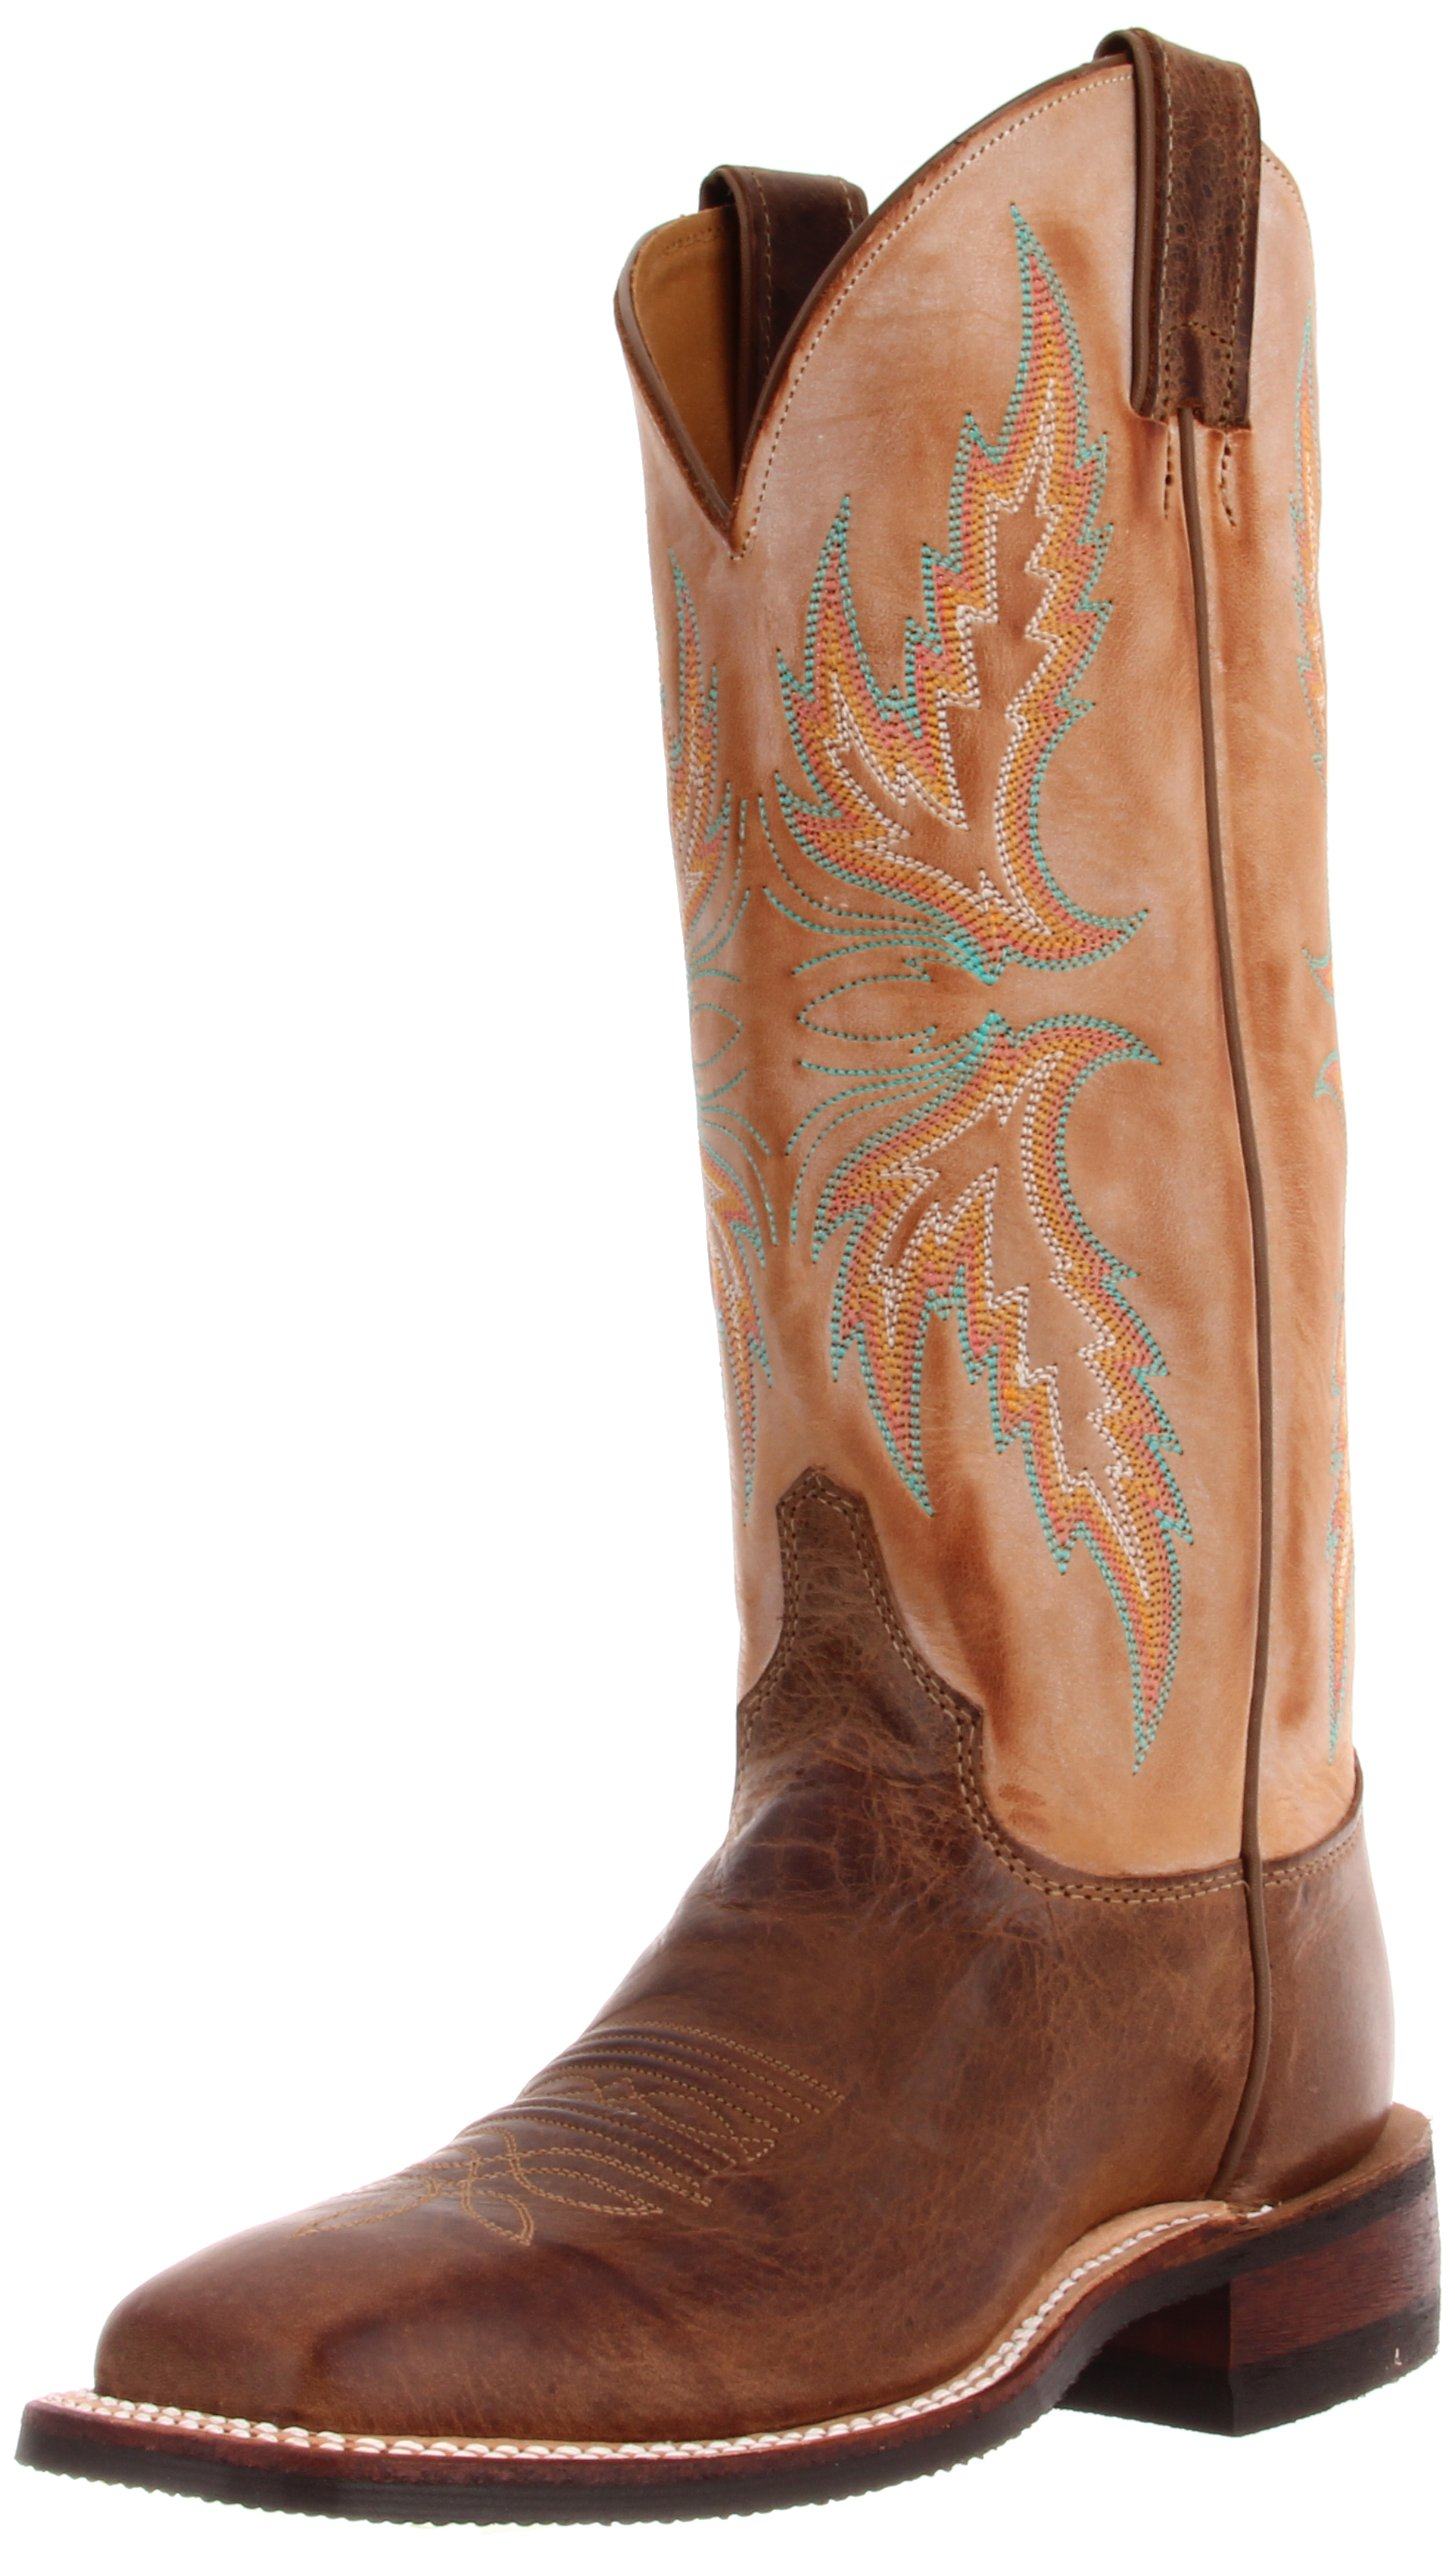 Justin Boots Women's U.S.A. Bent Rail Collection 13'' Boot Wide Square Double Stitch Toe Performance Rubber Outsole,Arizona Mocha/Fogged Camel,6.5 B US